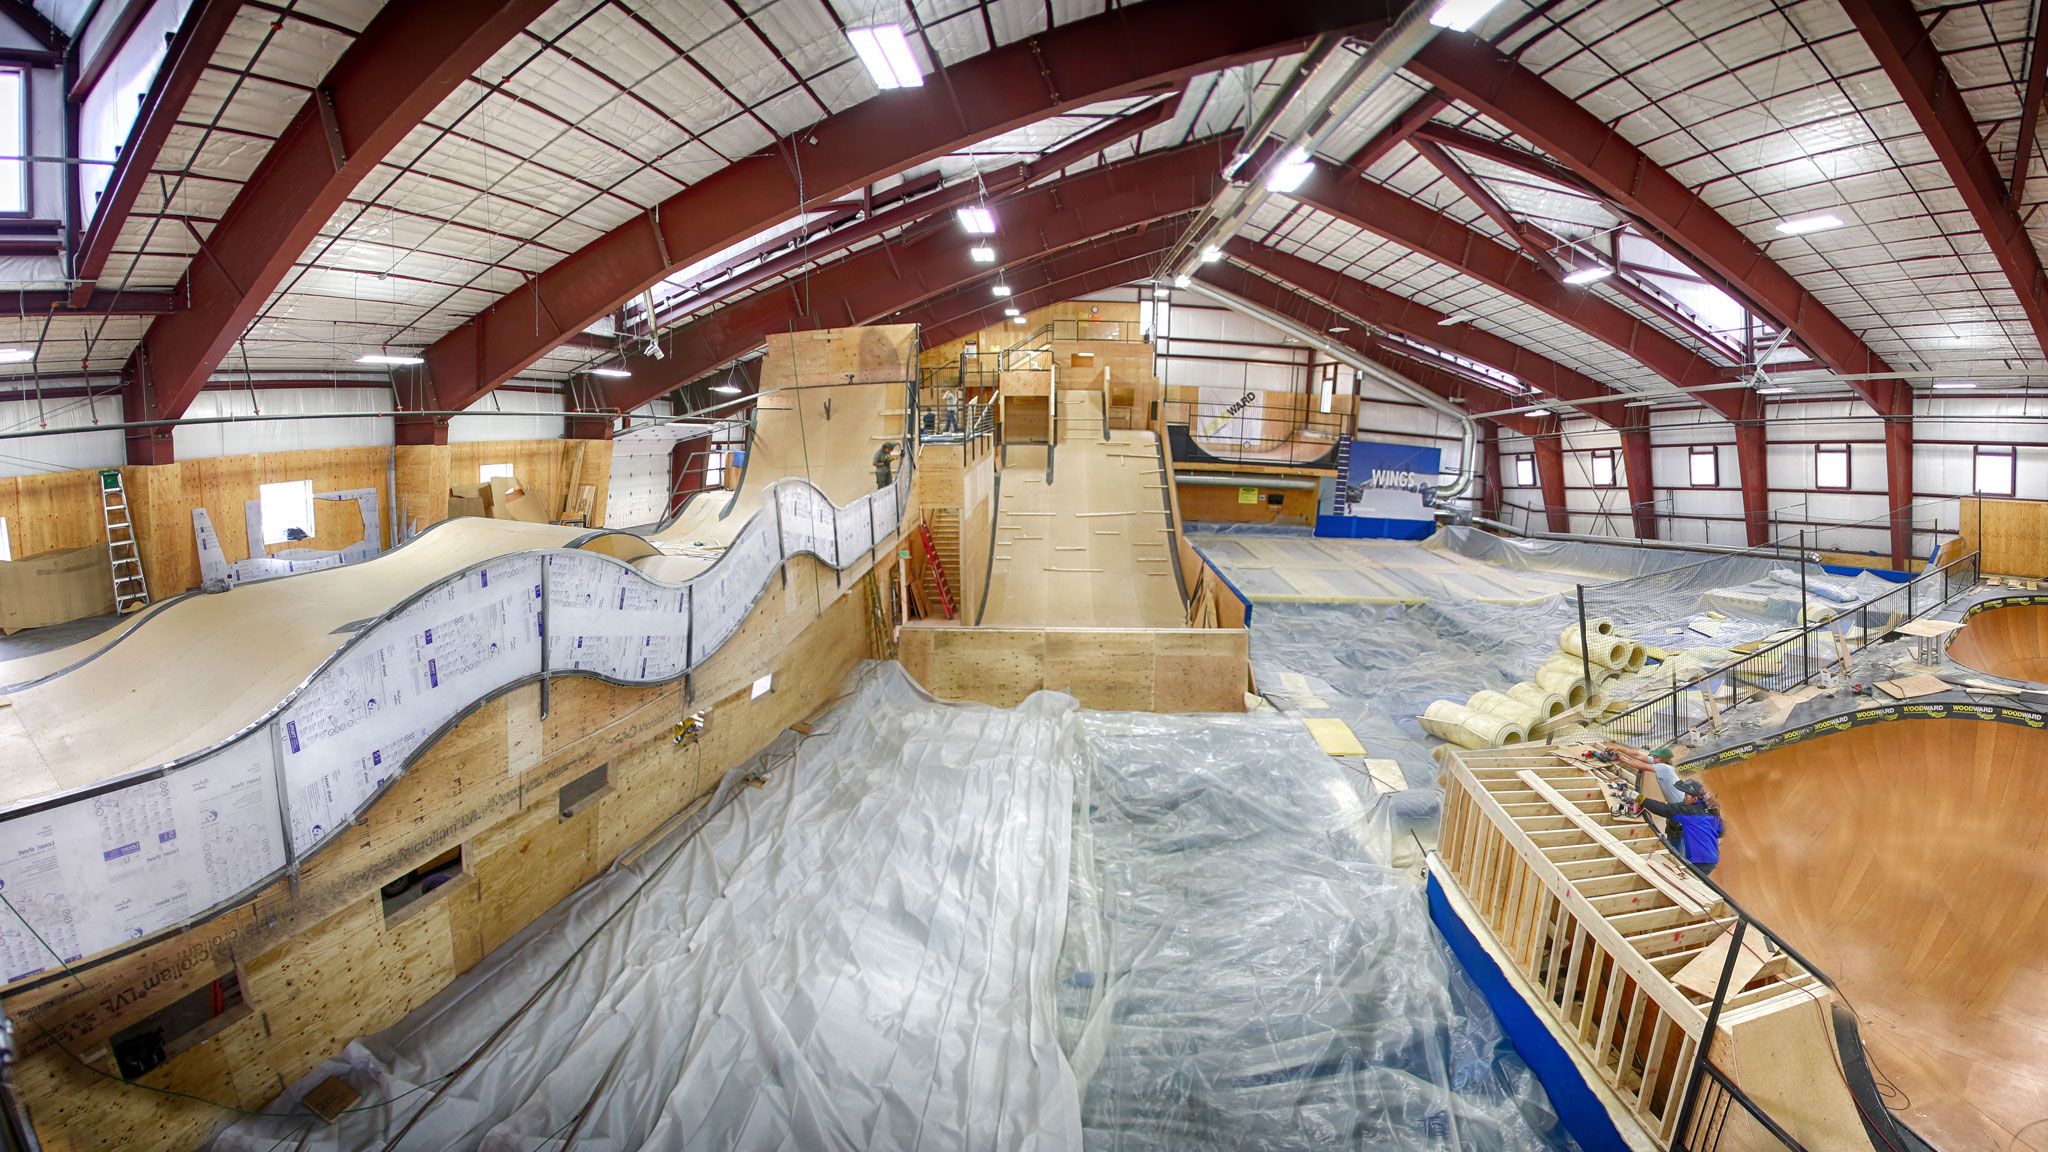 Woodward At Copper Undergoes Renovation X Games